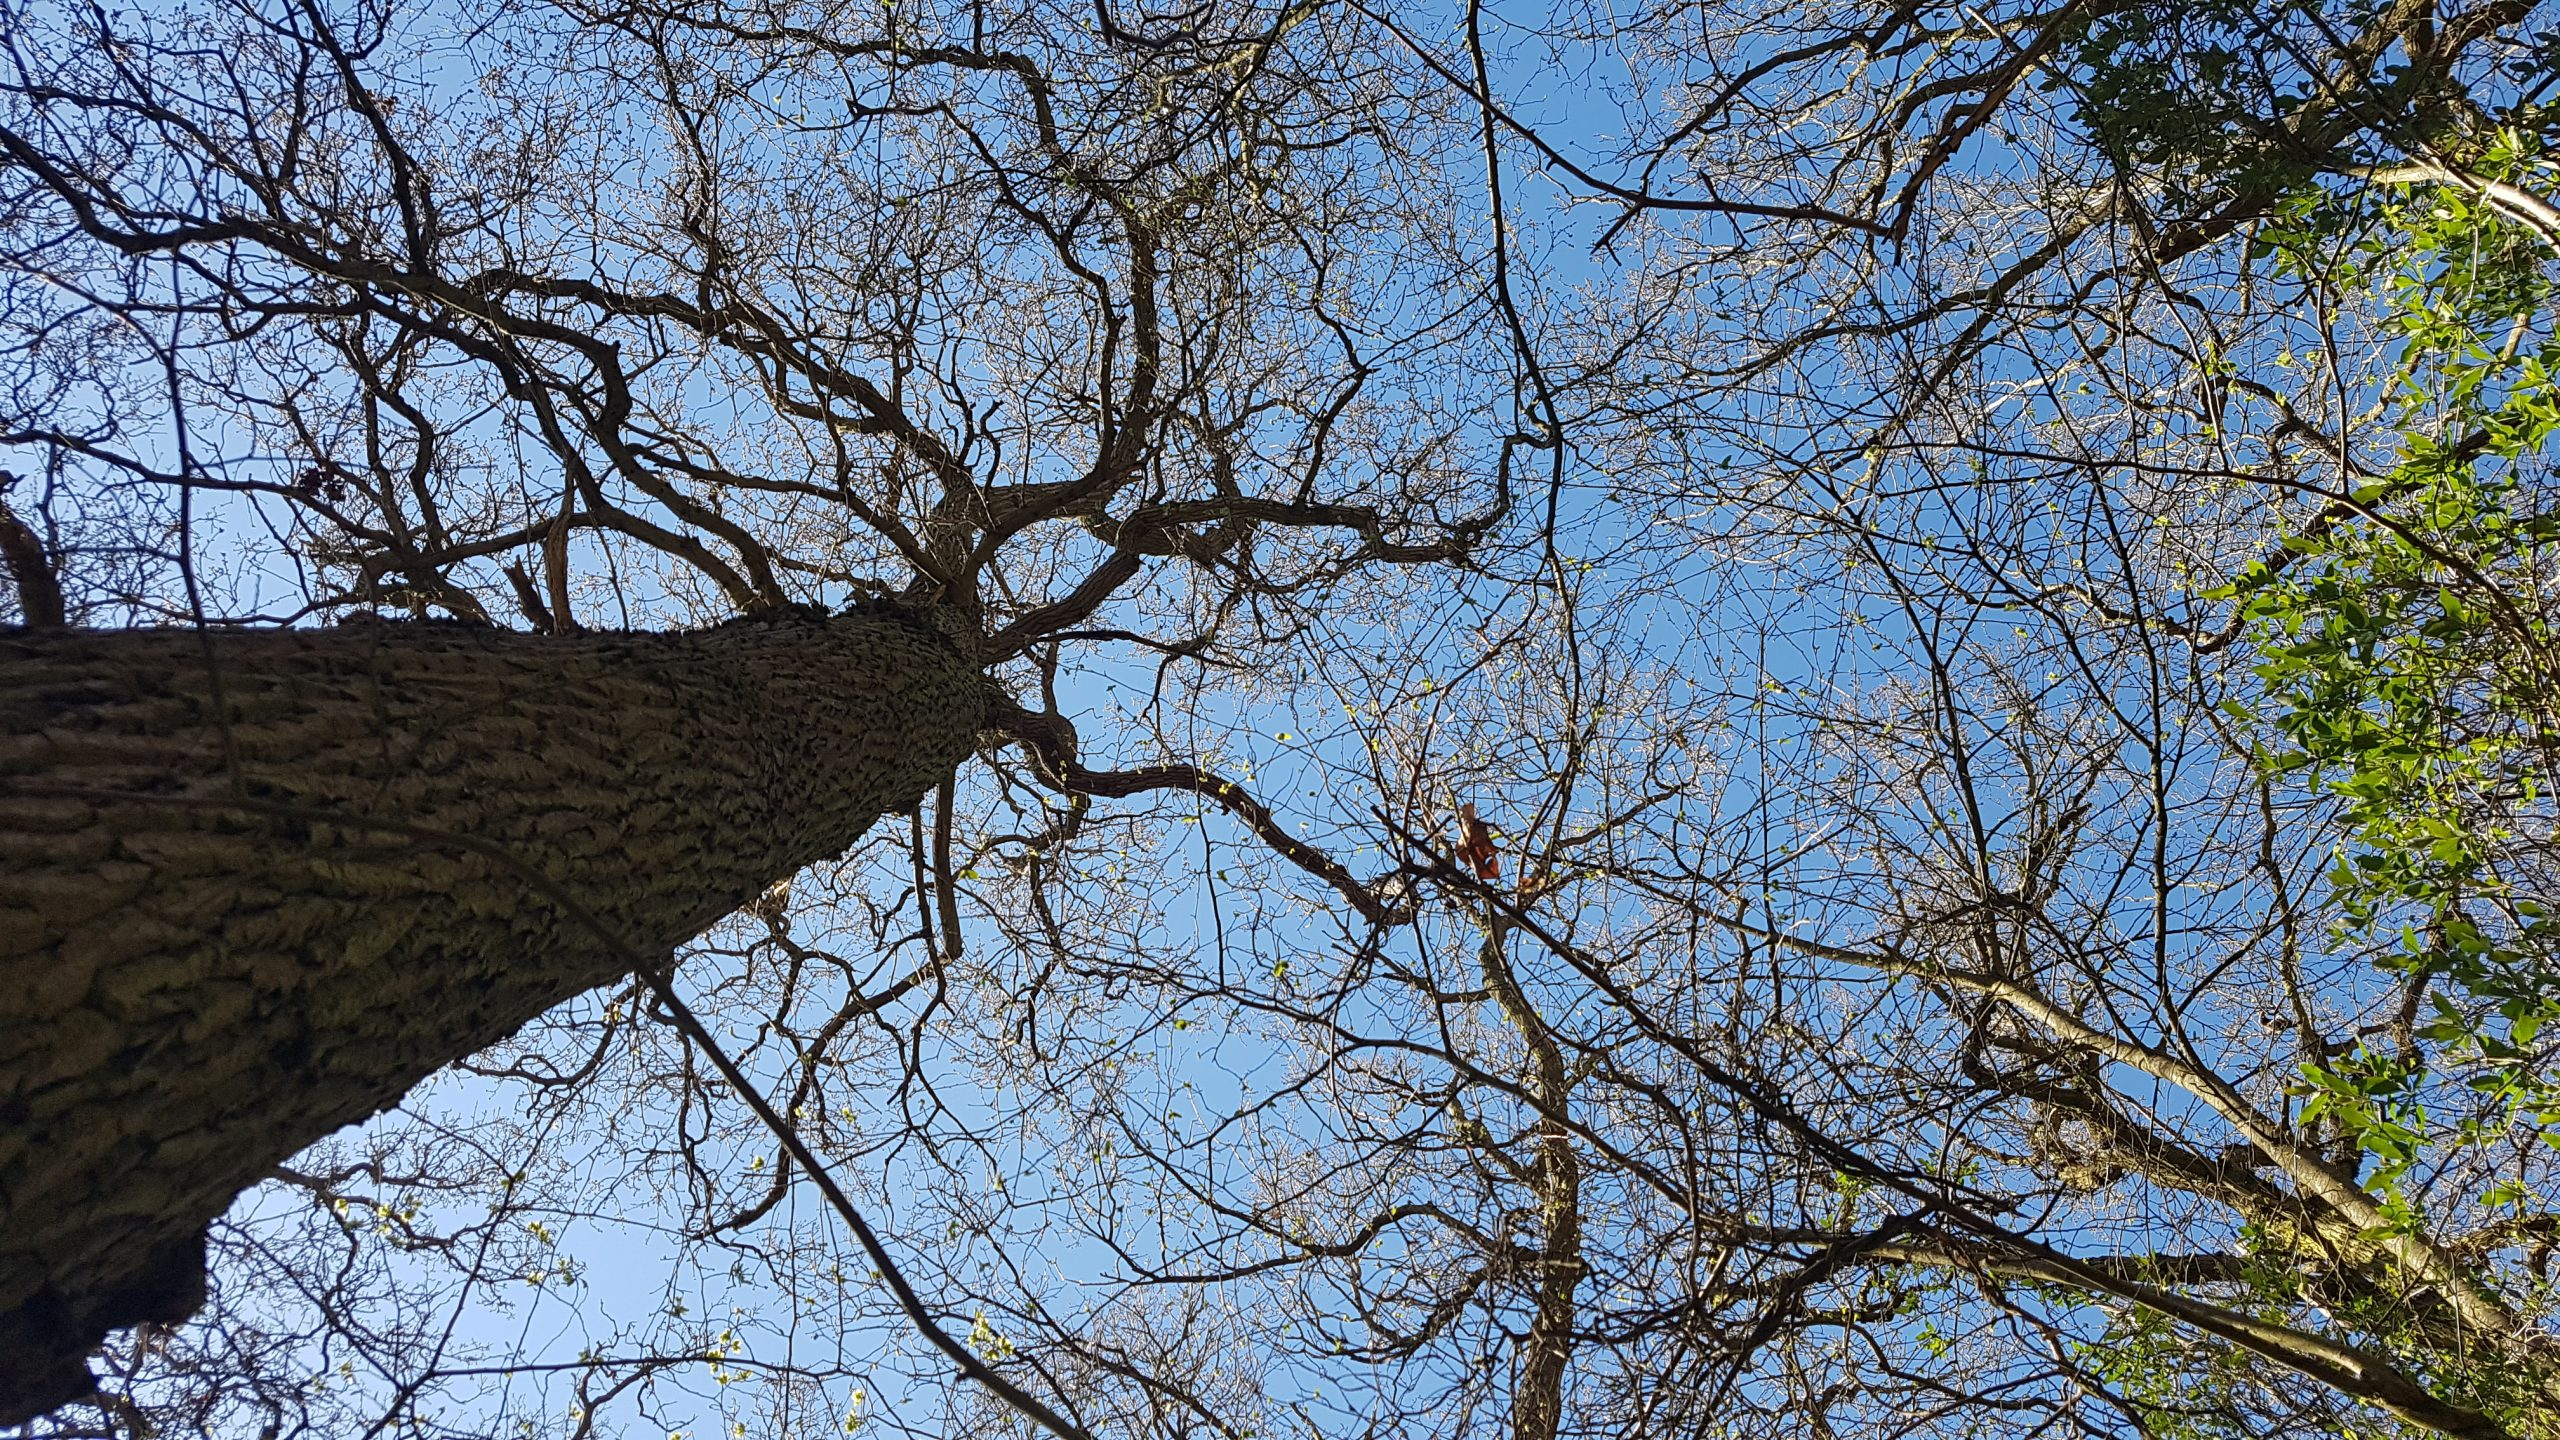 A view up into the roof of the tree line